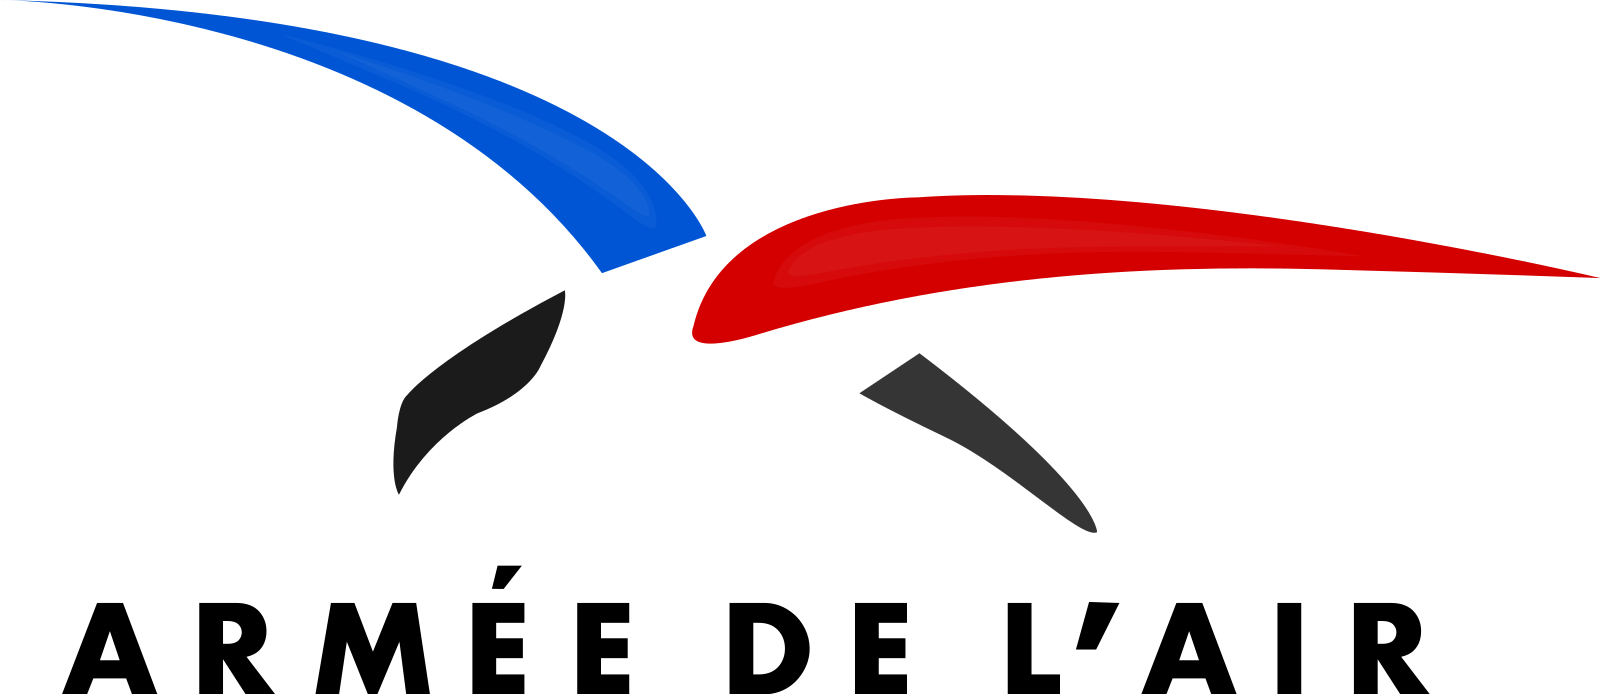 Logo_of_the_French_Air_Force_(Armee_de_l'Air).png